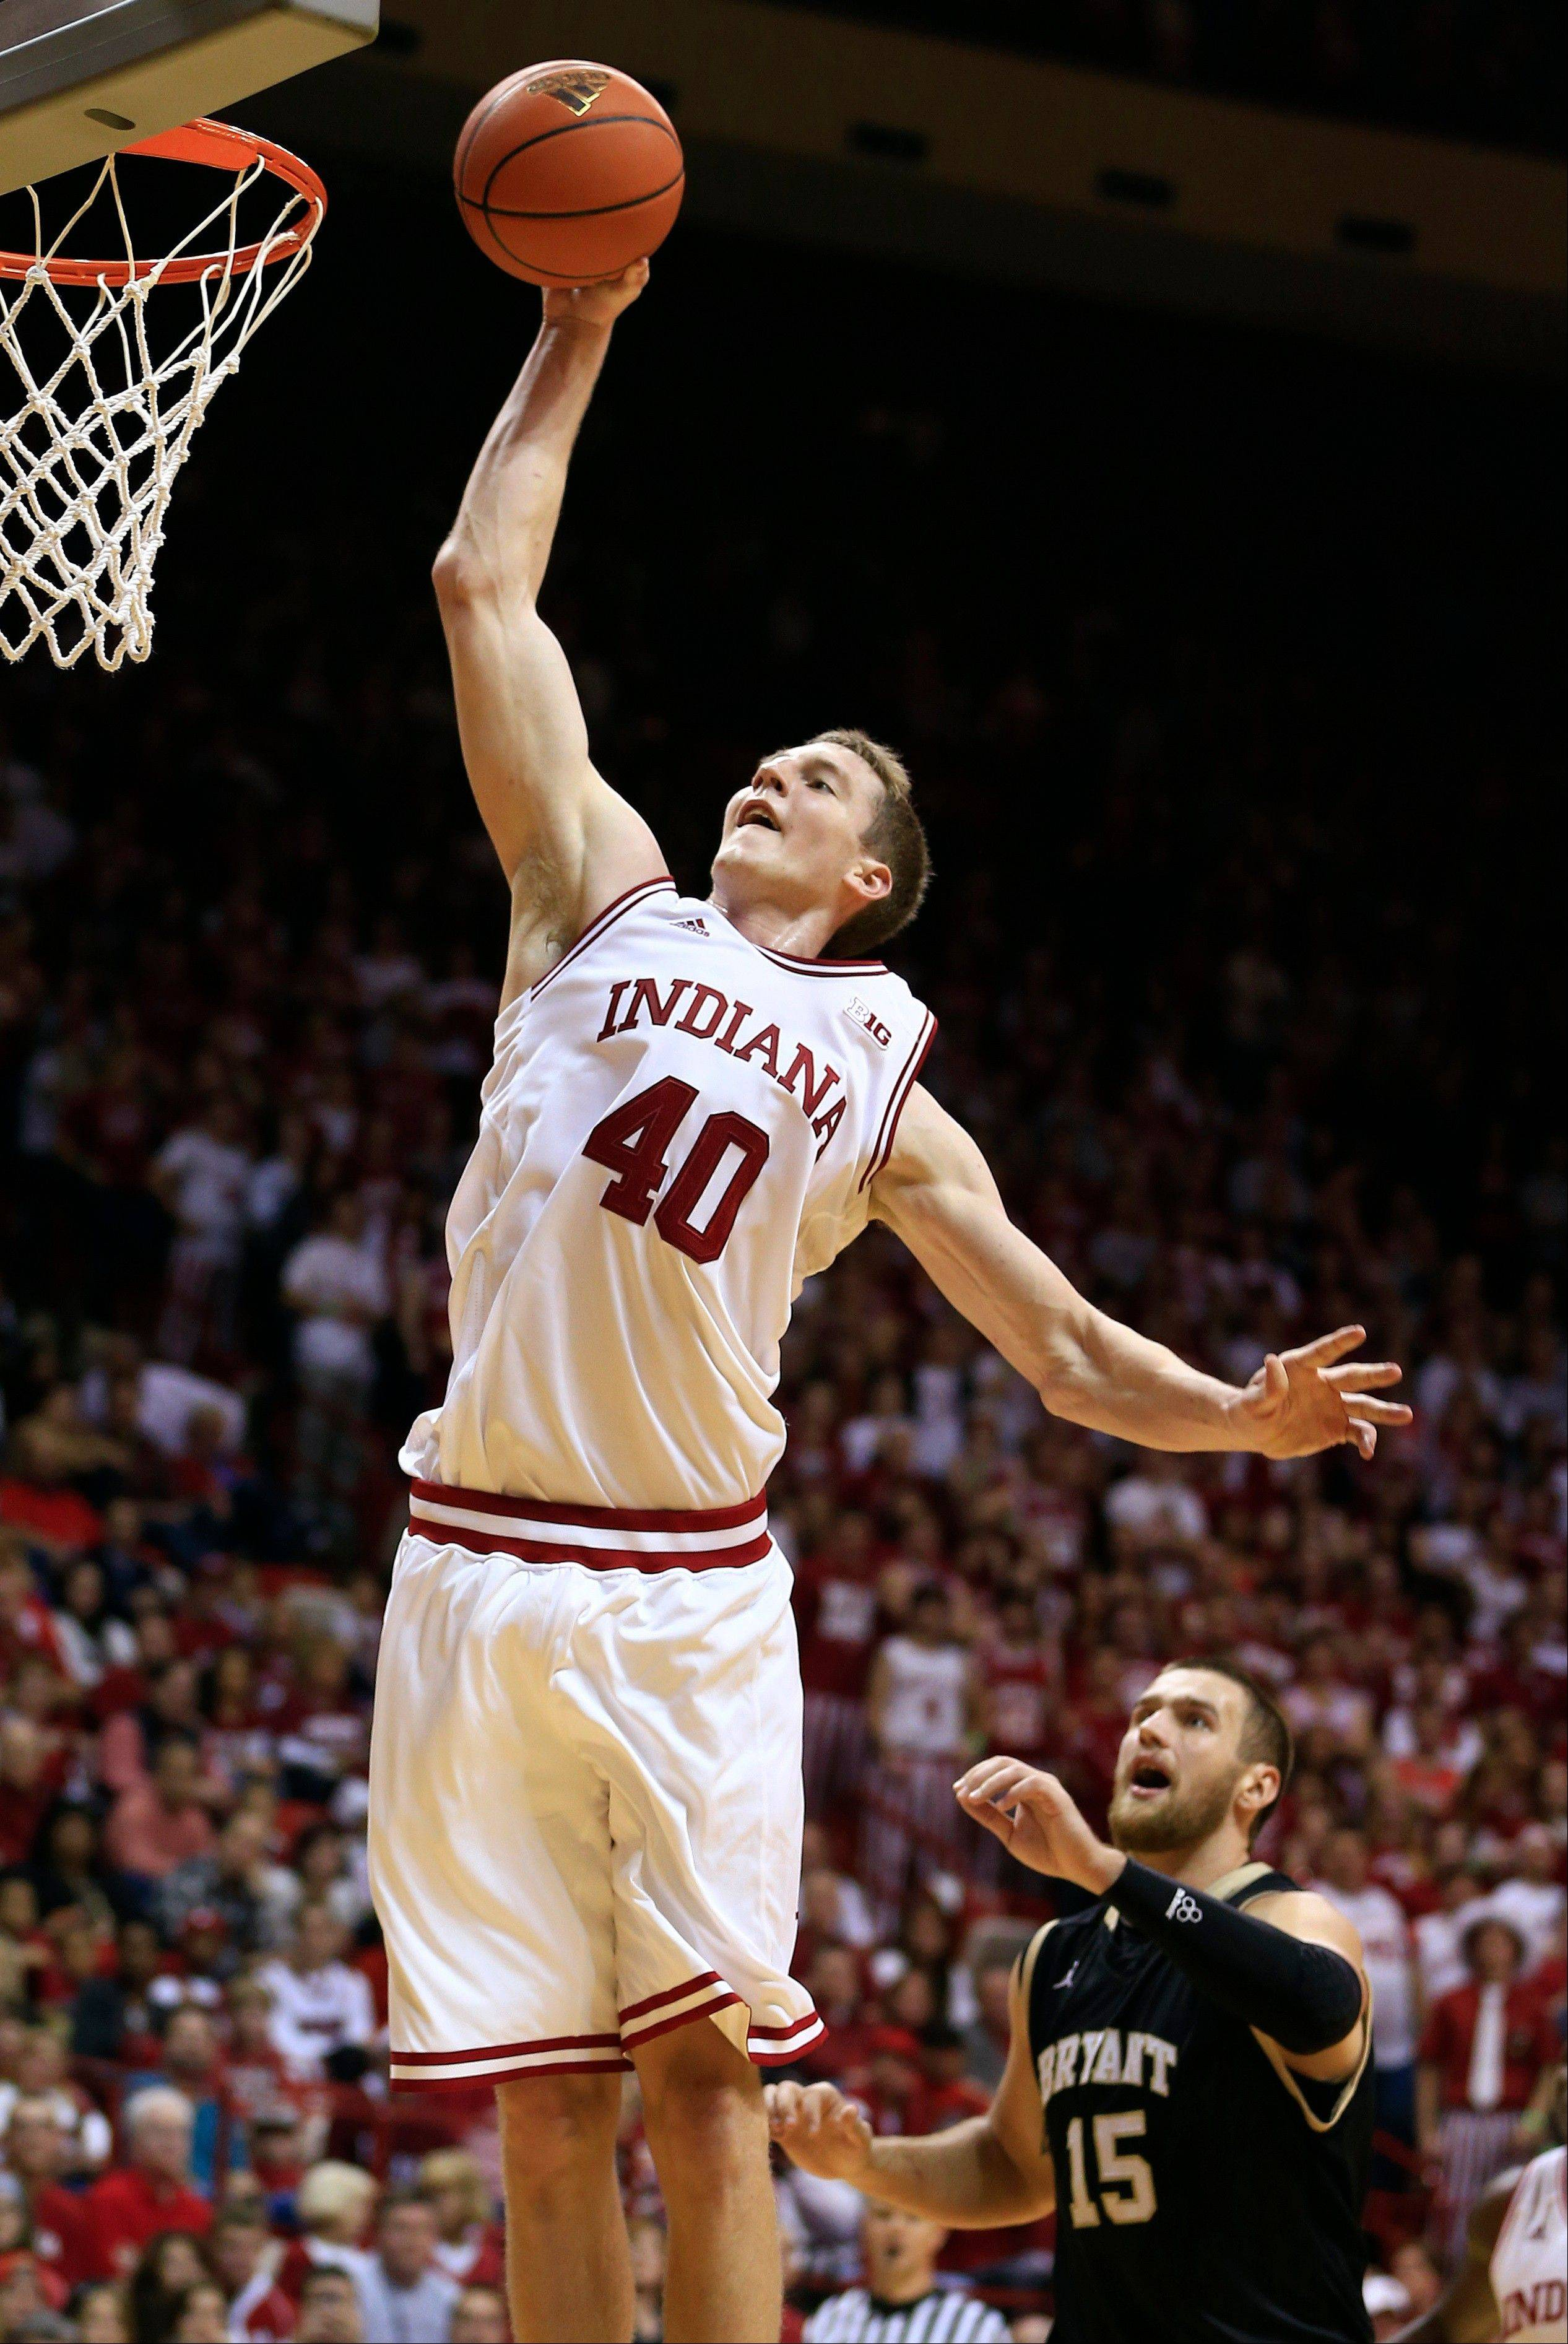 Indiana�s Cody Zeller dunks against Bryant�s Vlad Kondratyev Friday during the second half in Bloomington, Ind. Indiana won 97-54.